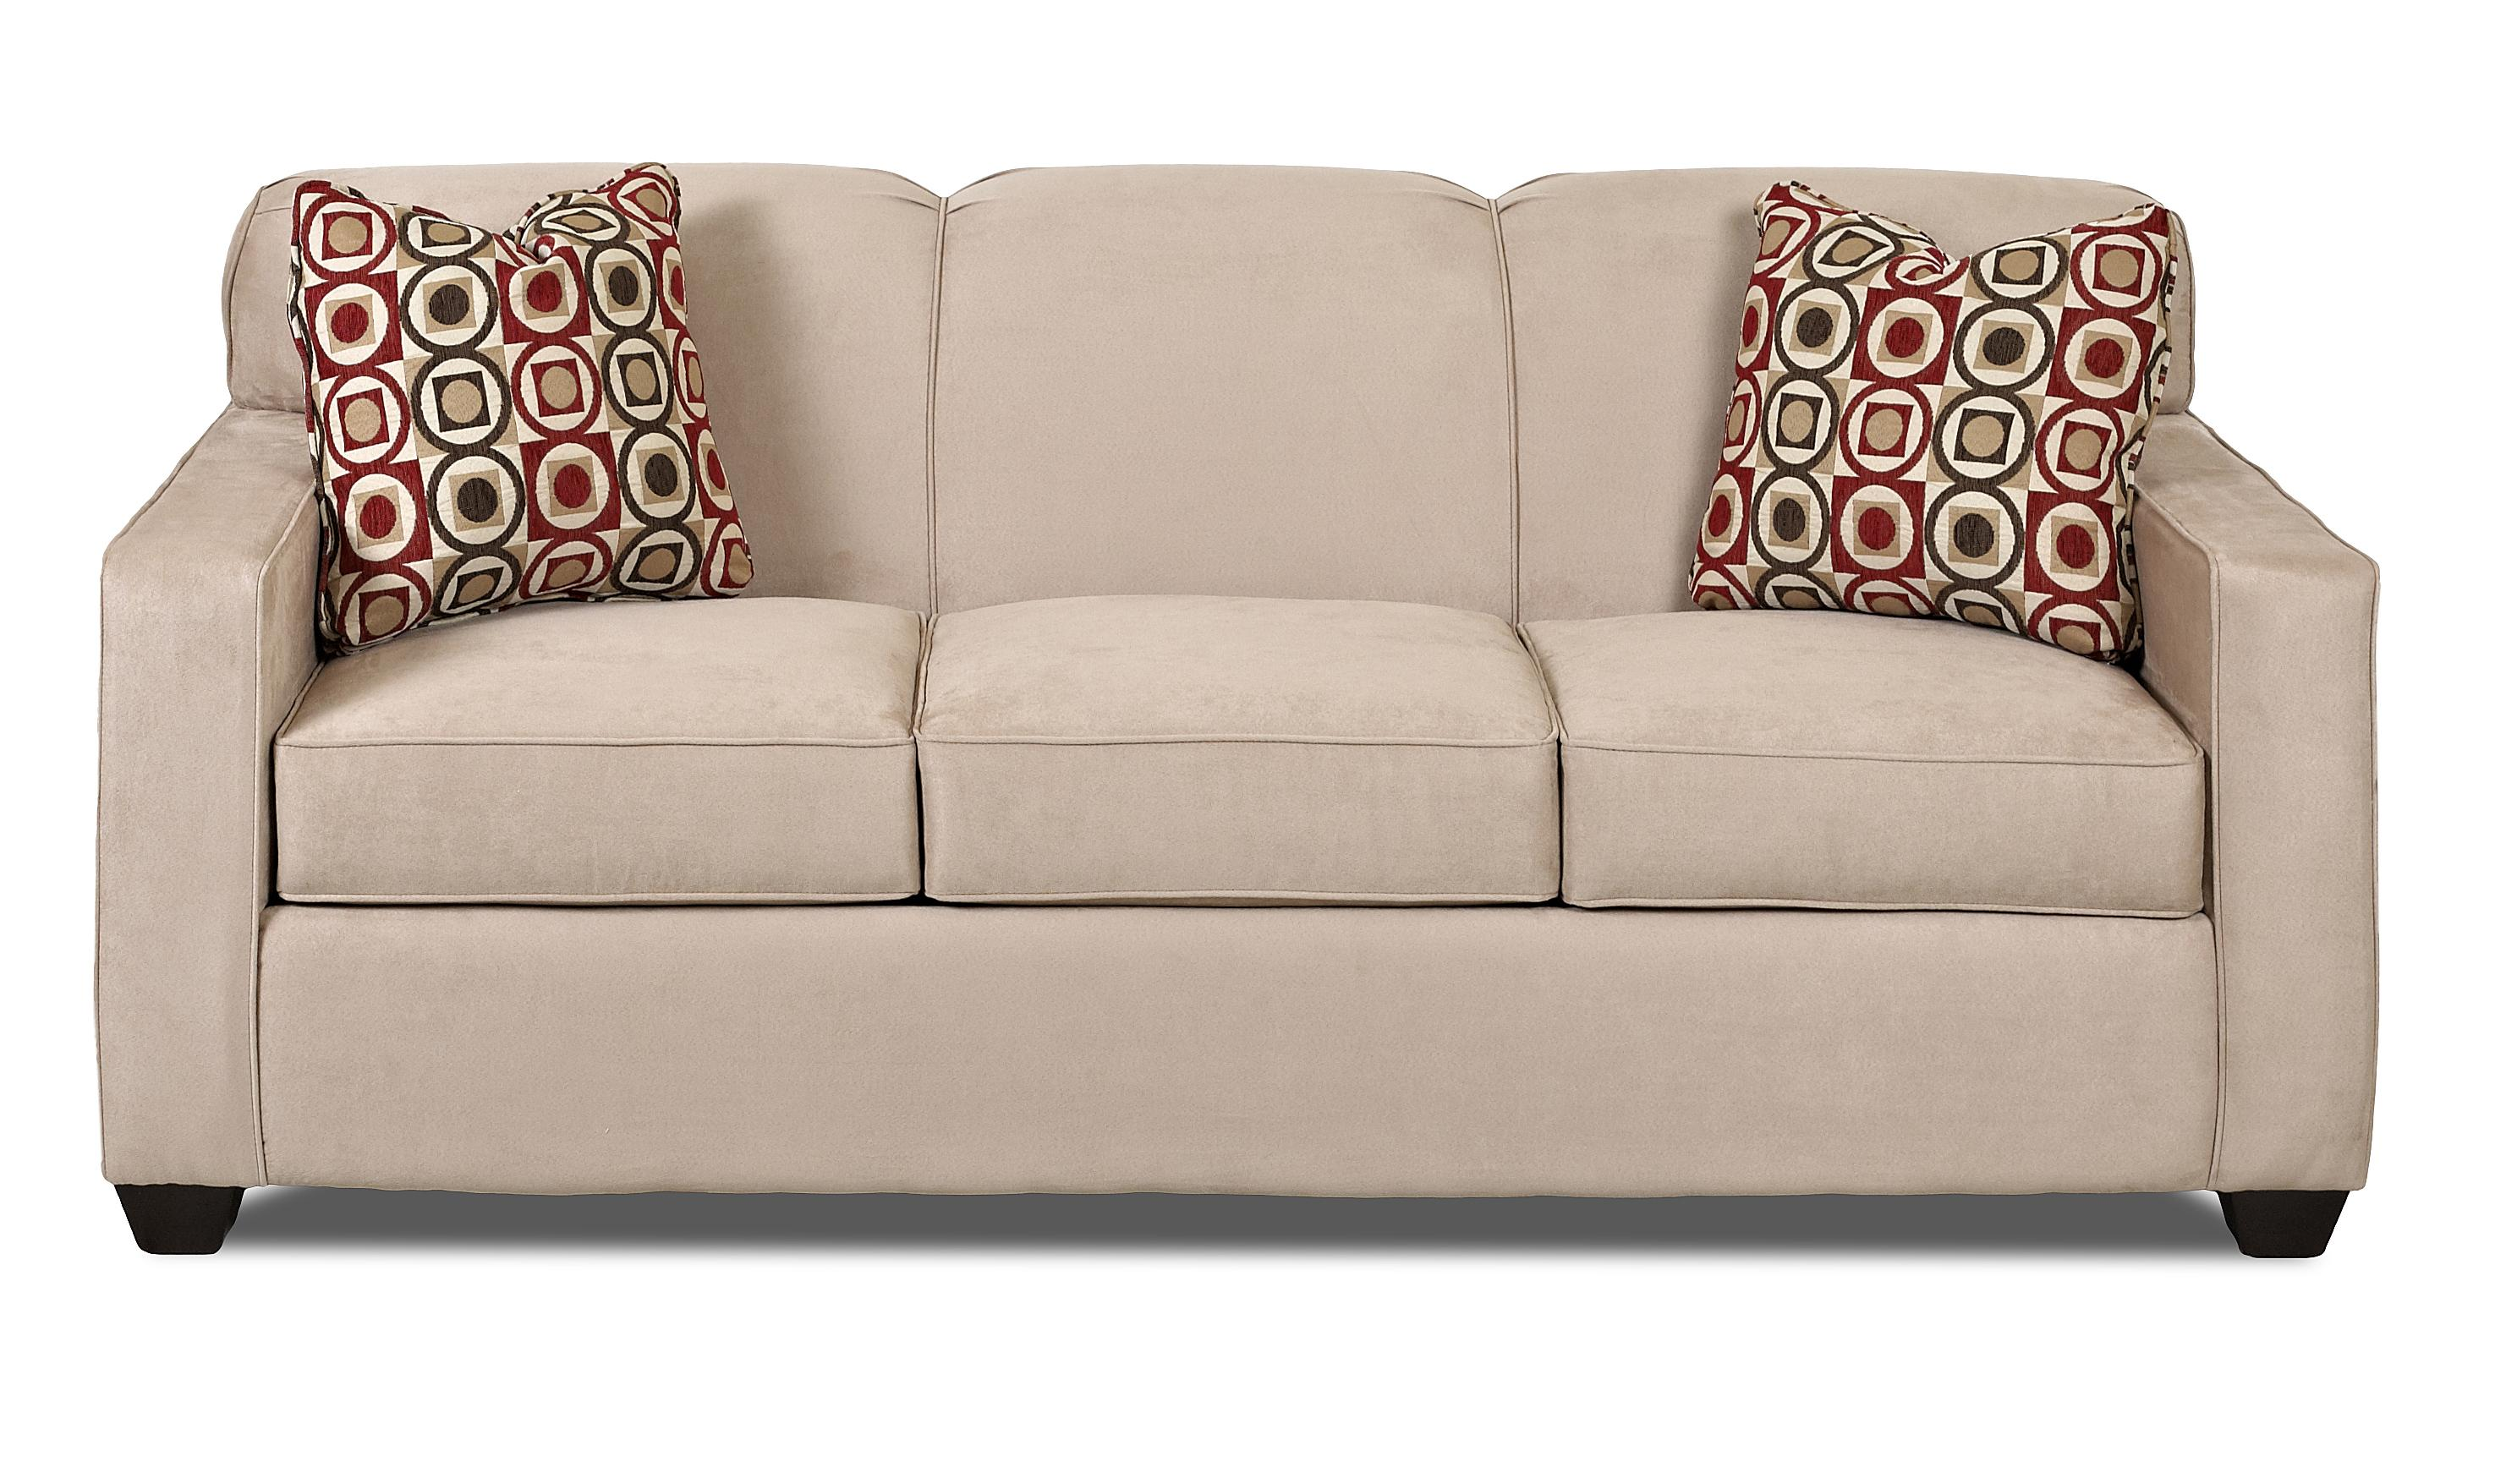 Gillis Sofa by Klaussner at Northeast Factory Direct